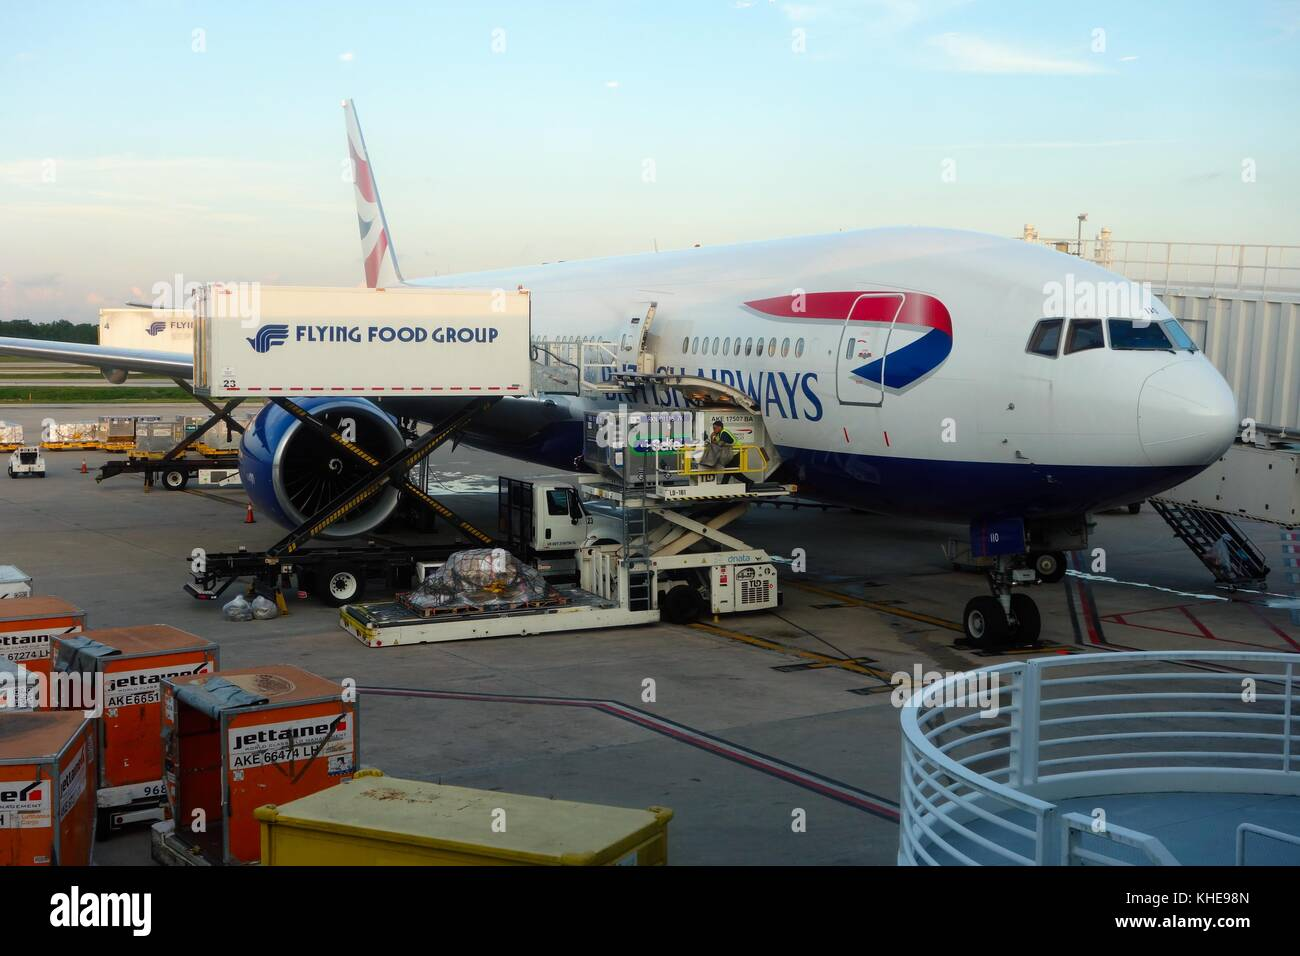 A British Airways jet being serviced by Flying Food Group scissor lifts at Orlando International Airport, Florida, - Stock Image